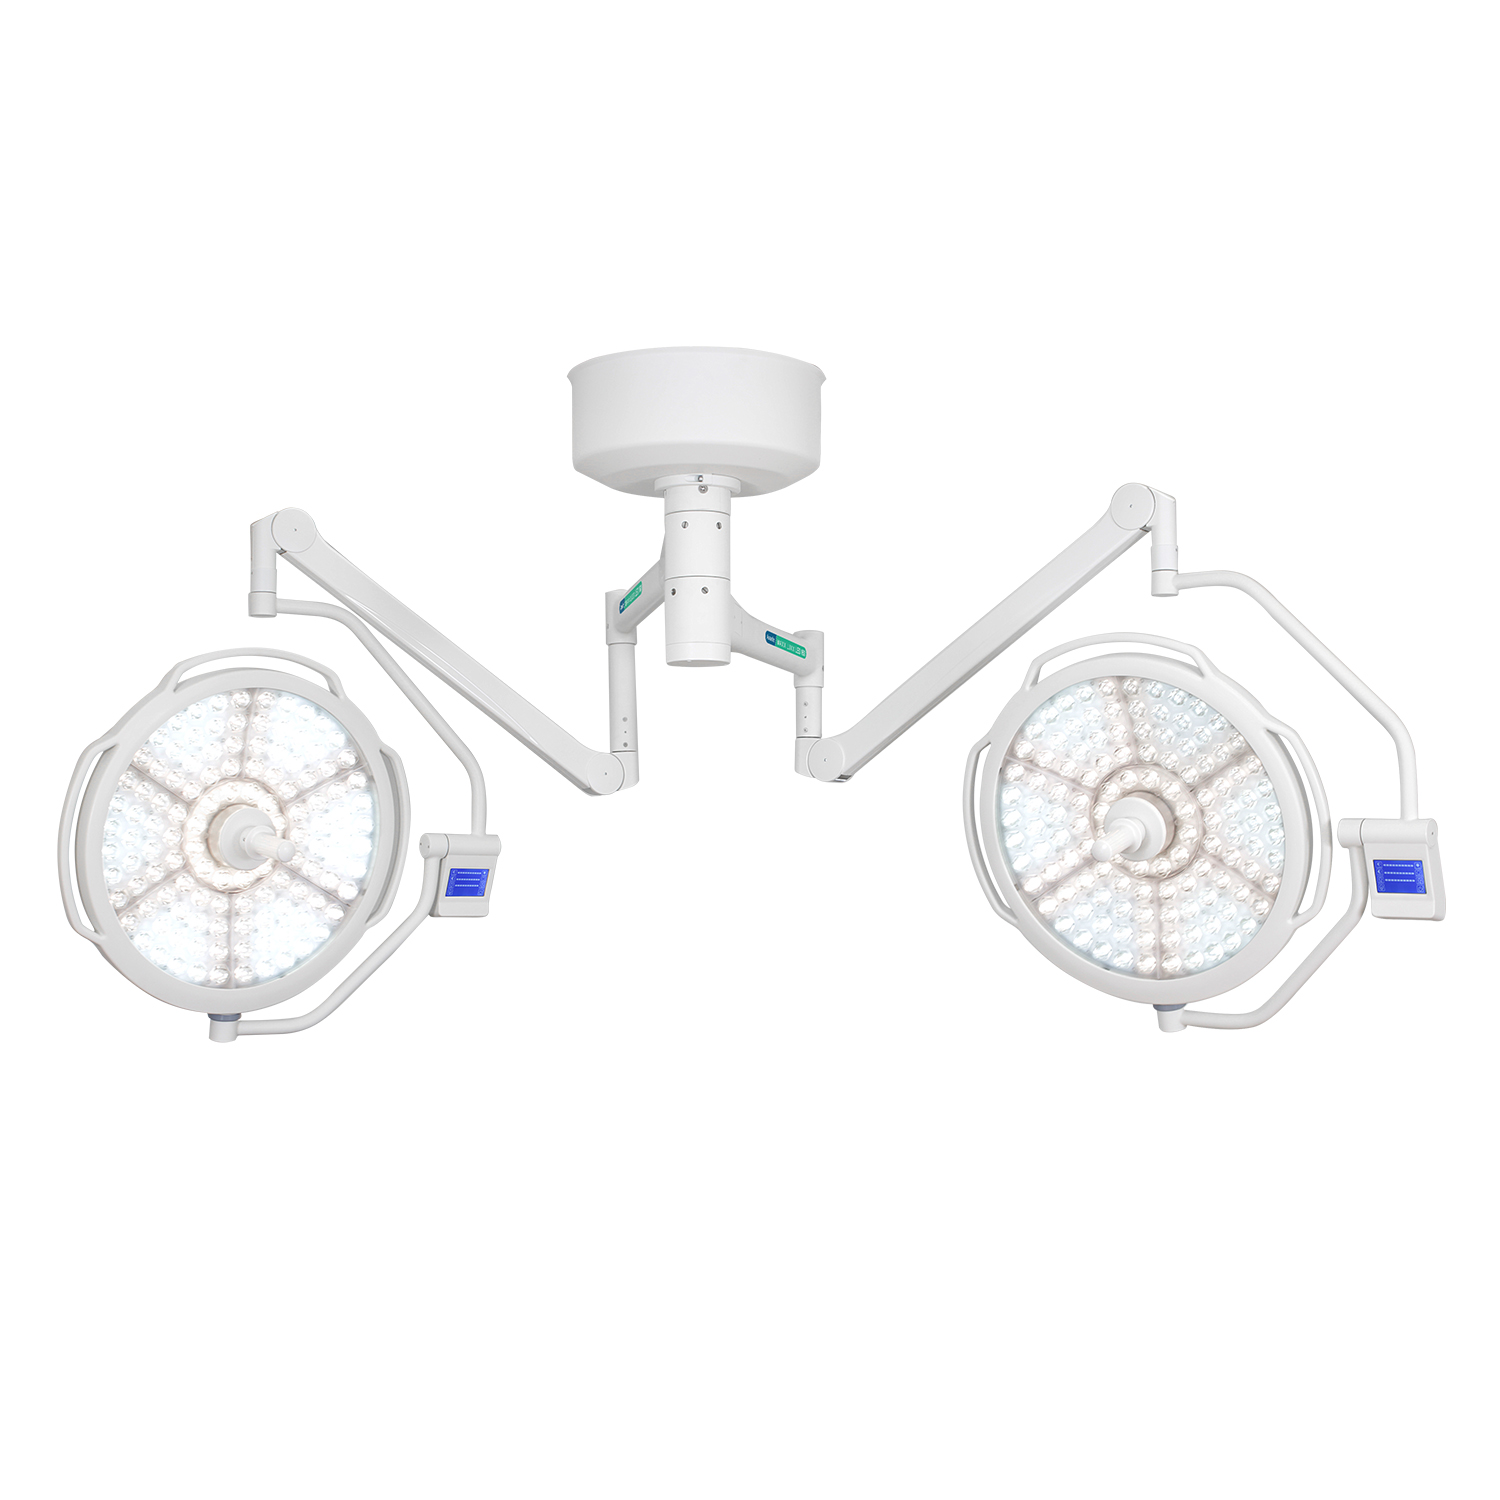 Avante Maxx Luxx LED 160 Surgical Light